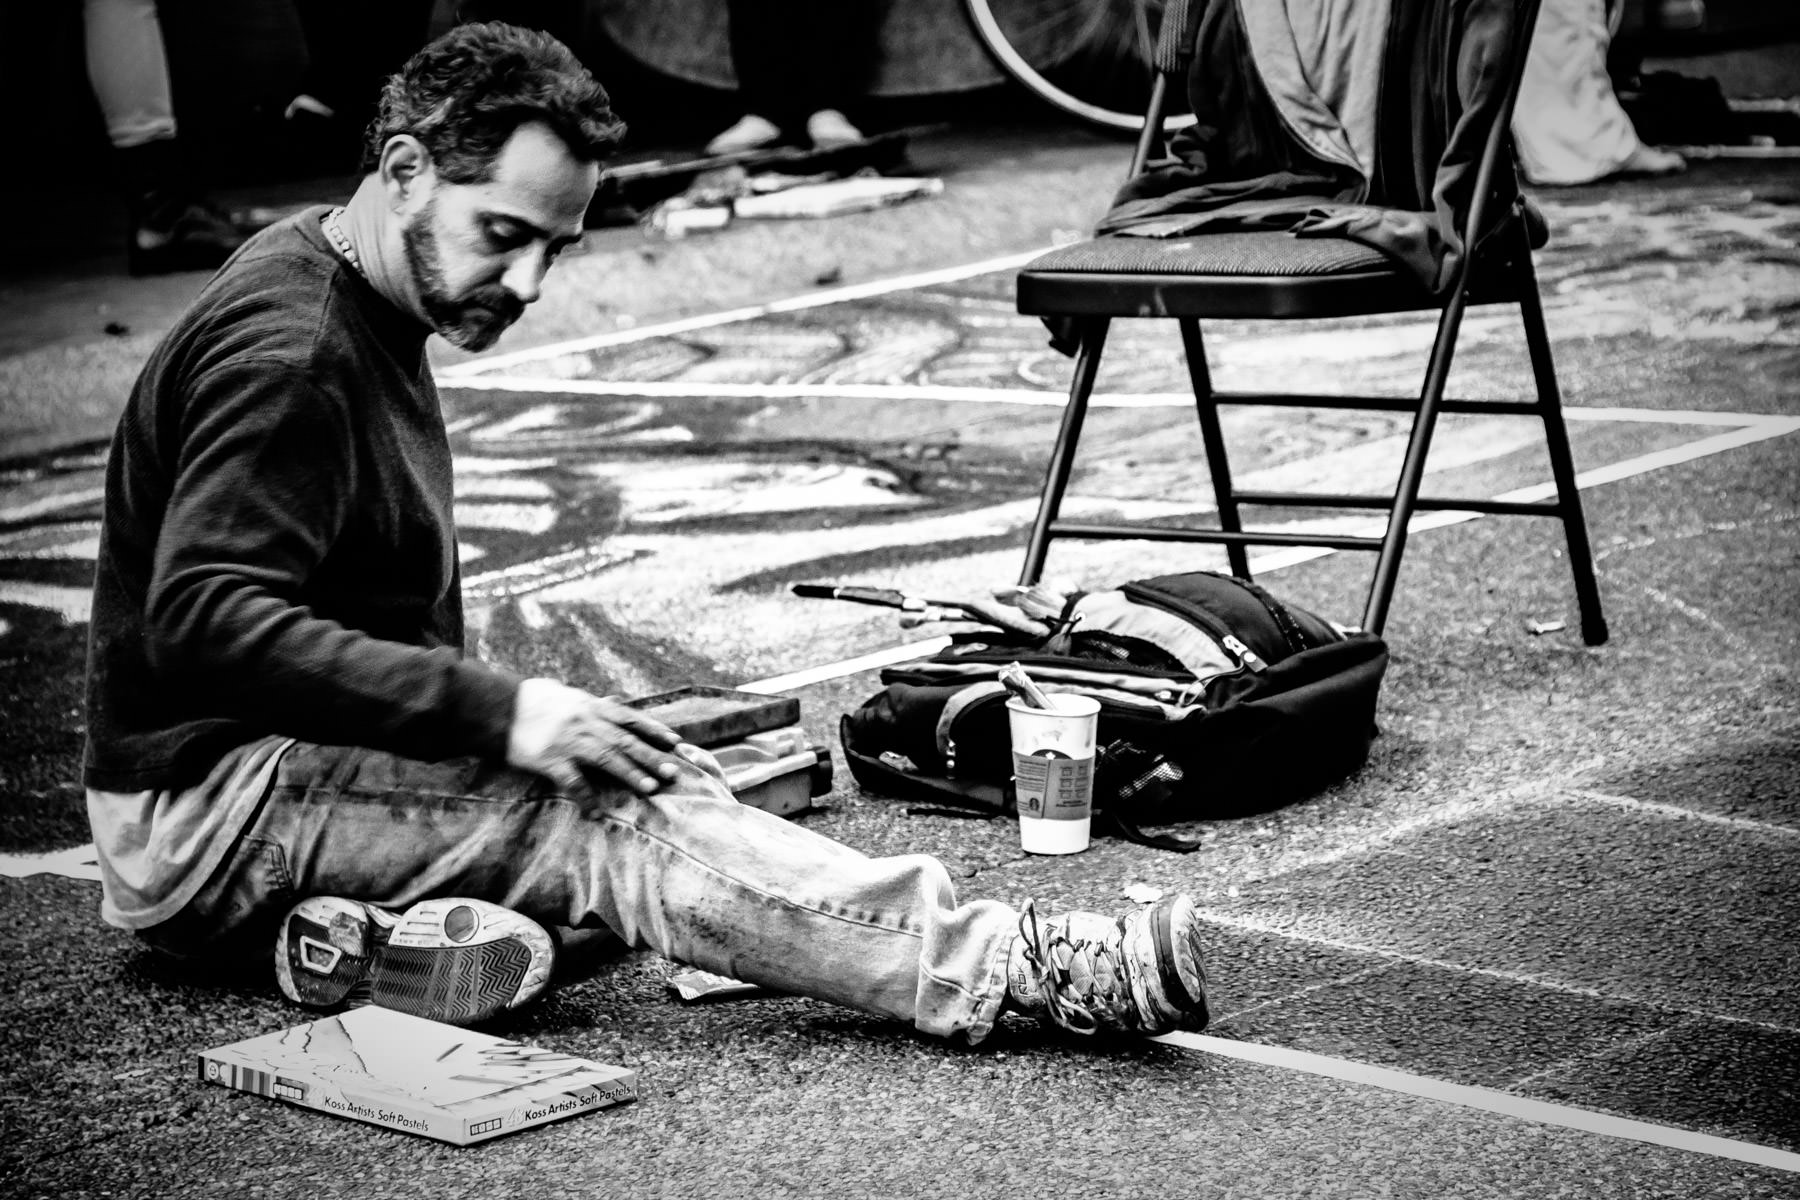 A chalk artist reaches for his medium at the 2013 Victoria International Chalk Art Festival, Victoria, British Columbia.